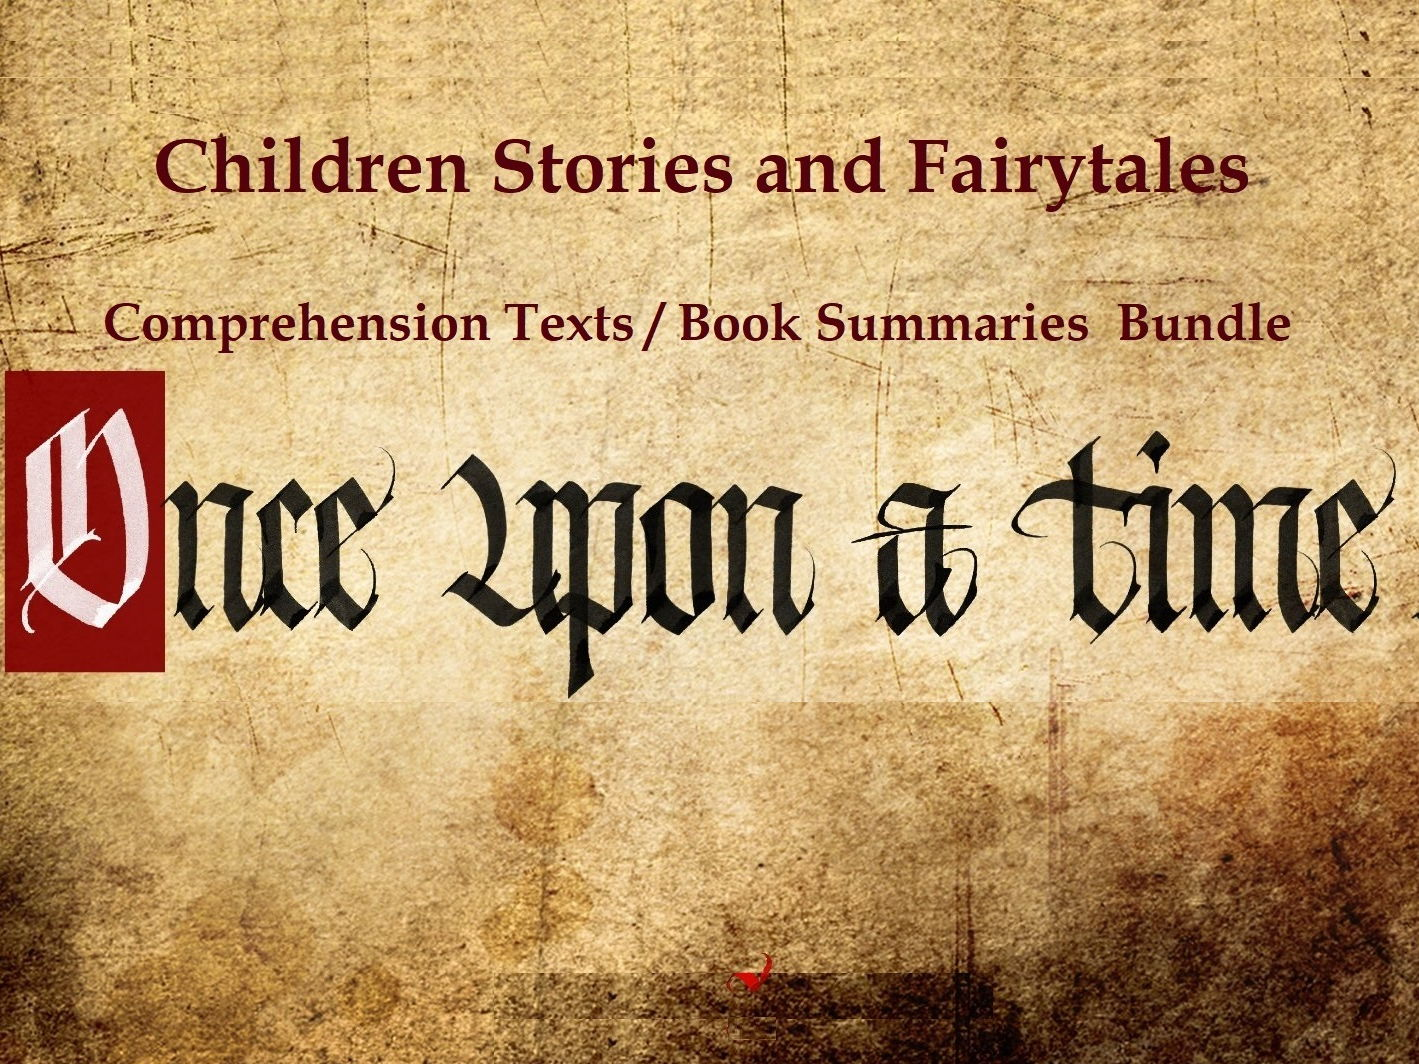 Children Stories and Fairytales - Comprehension Texts / Book Summaries  Bundle